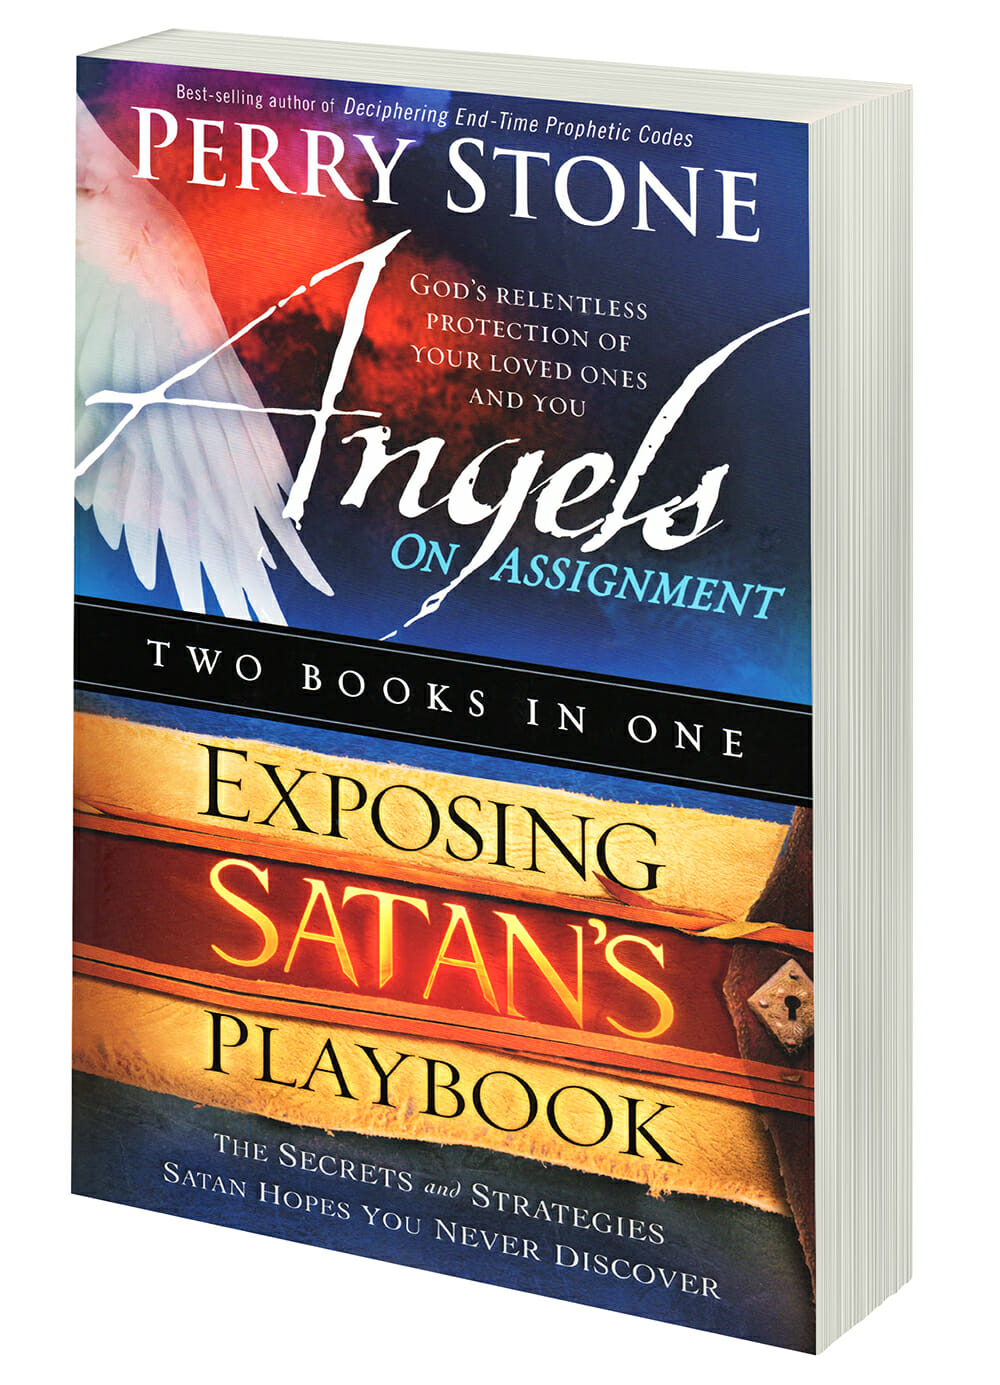 2N1 Angels on Assignment and Exposing Satan's Playbook (2 Top Selling Books in 1)-3491